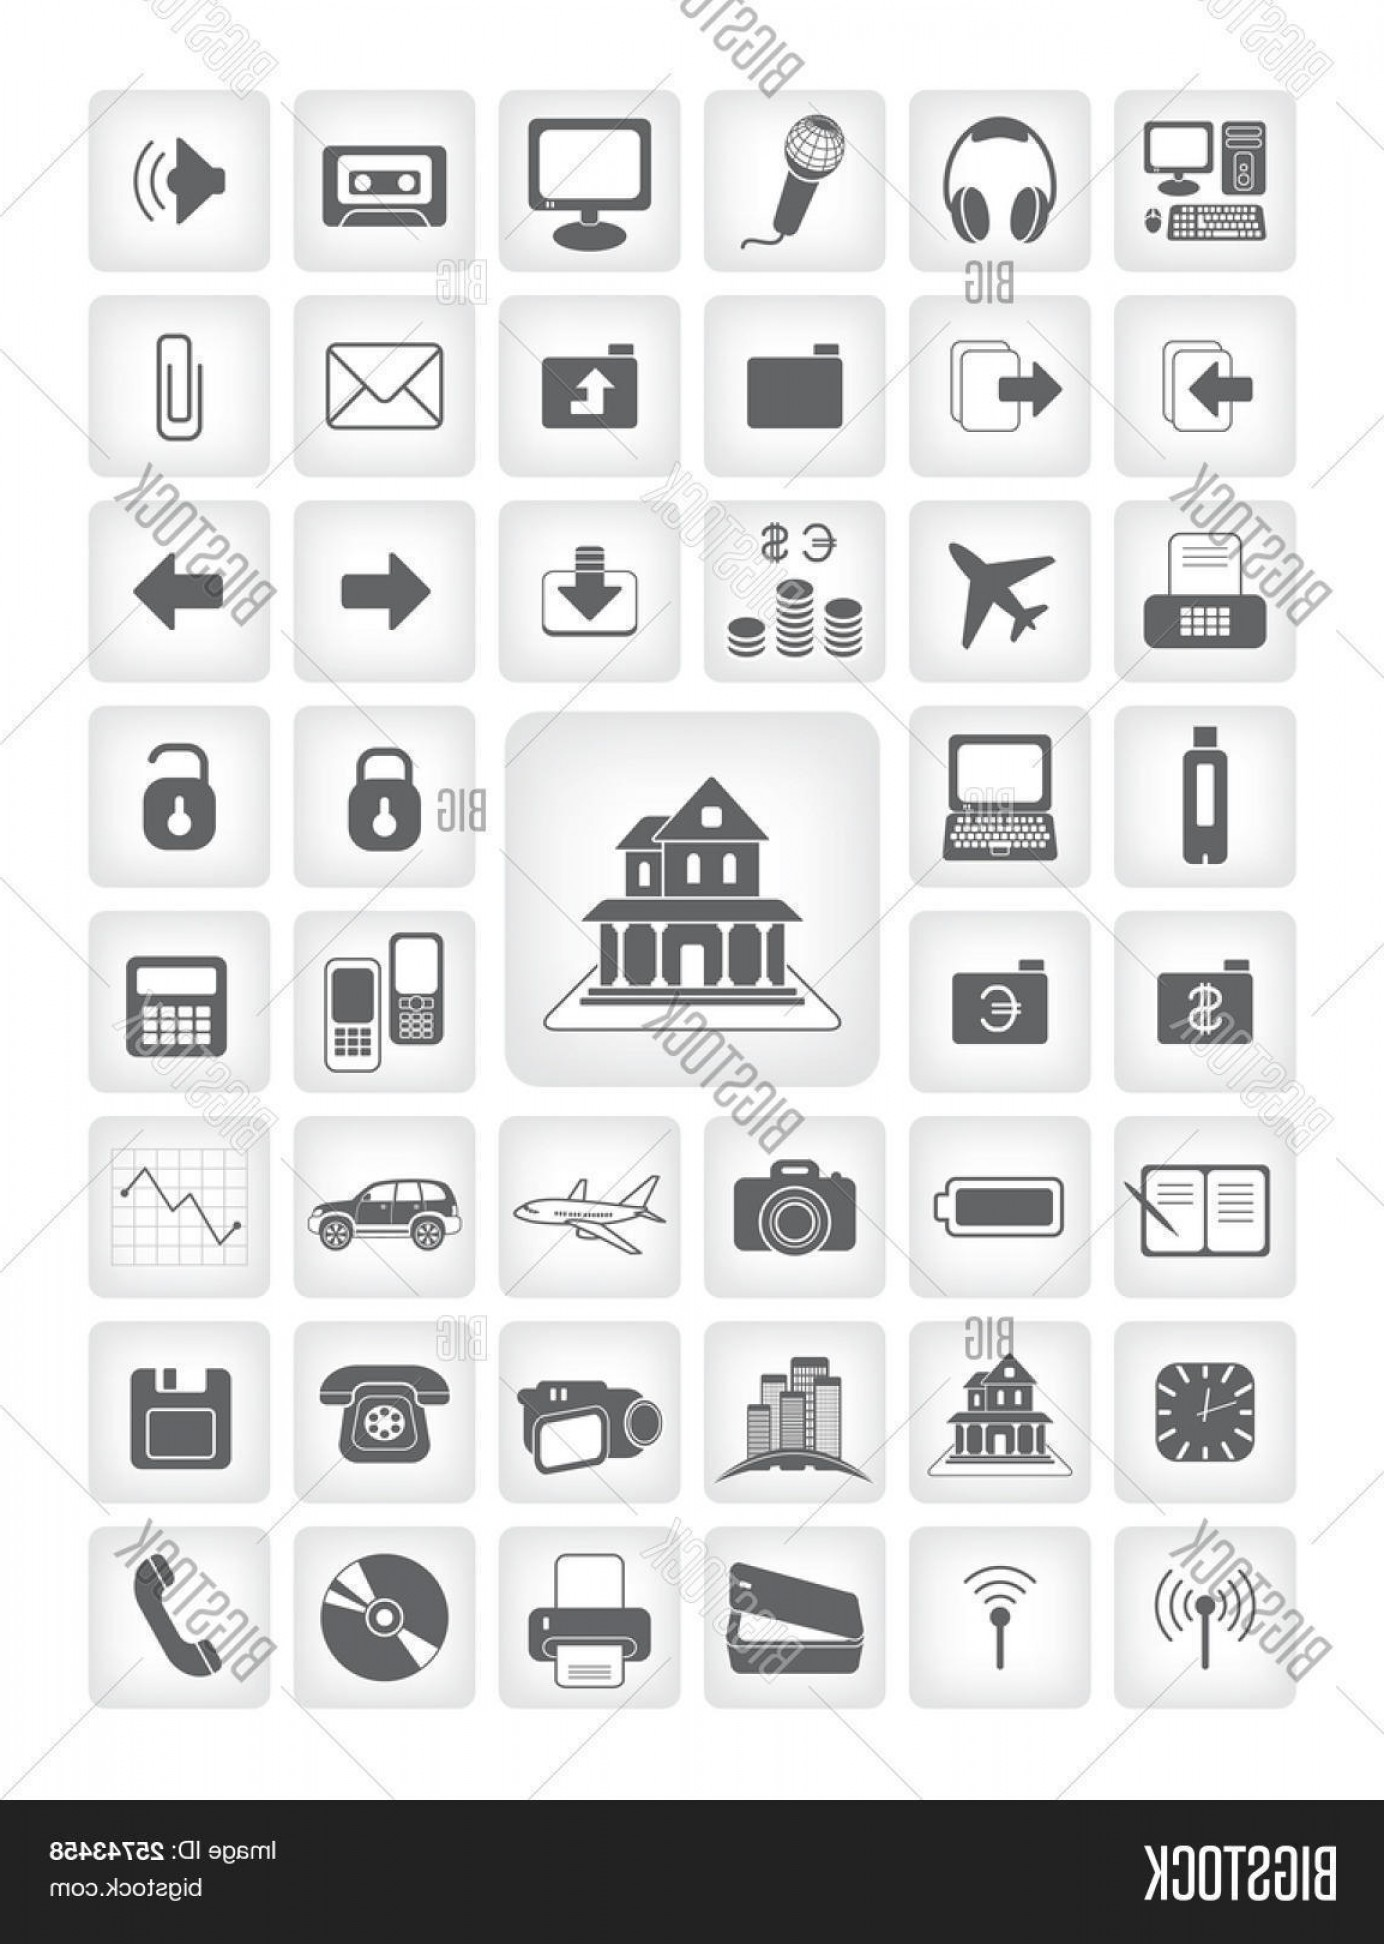 Vector Applications On Computers: Stock Vector Vector Icons For Web Applications Business Computers Finance